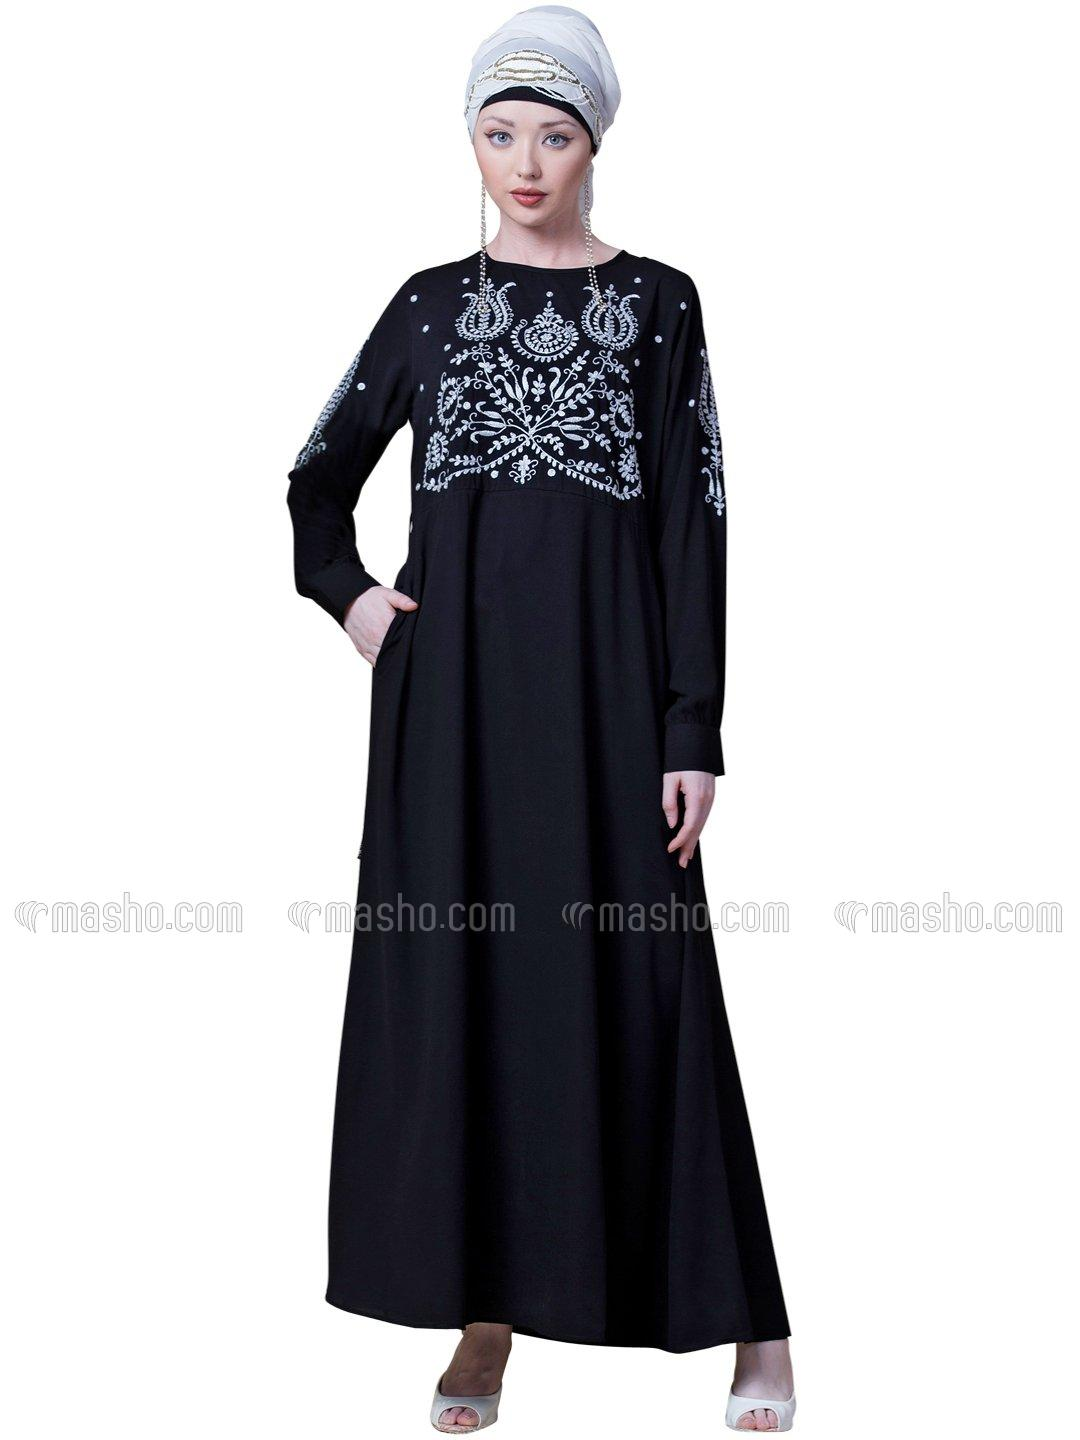 100 % Polyster Crepe Embroidered party Abaya In Black And Silver